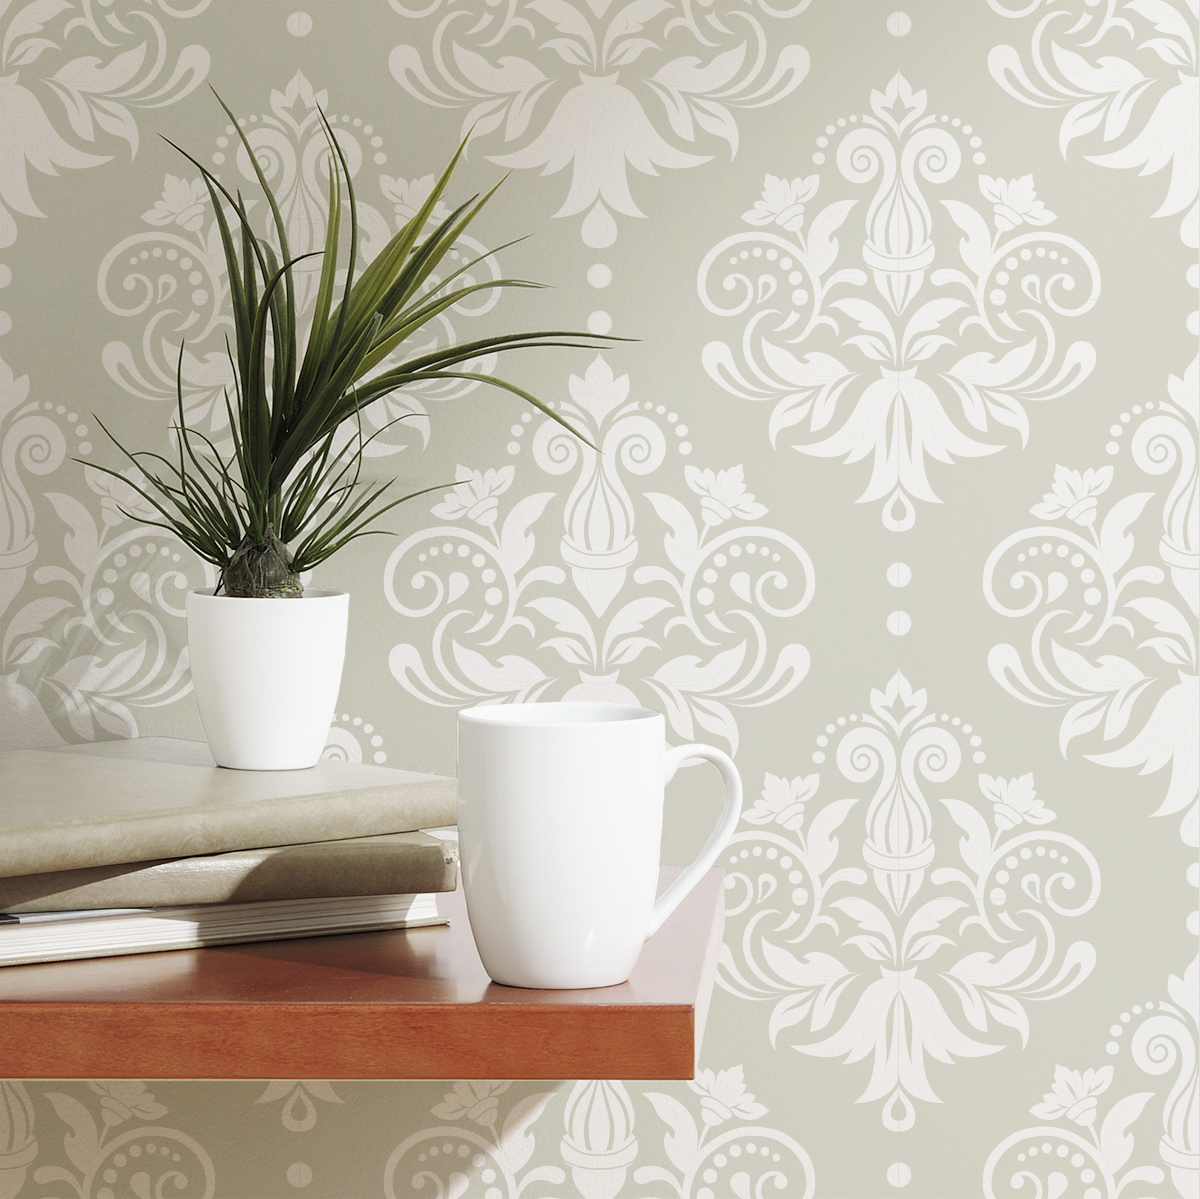 Damask Removable Wallpaper Tile 1200x1199